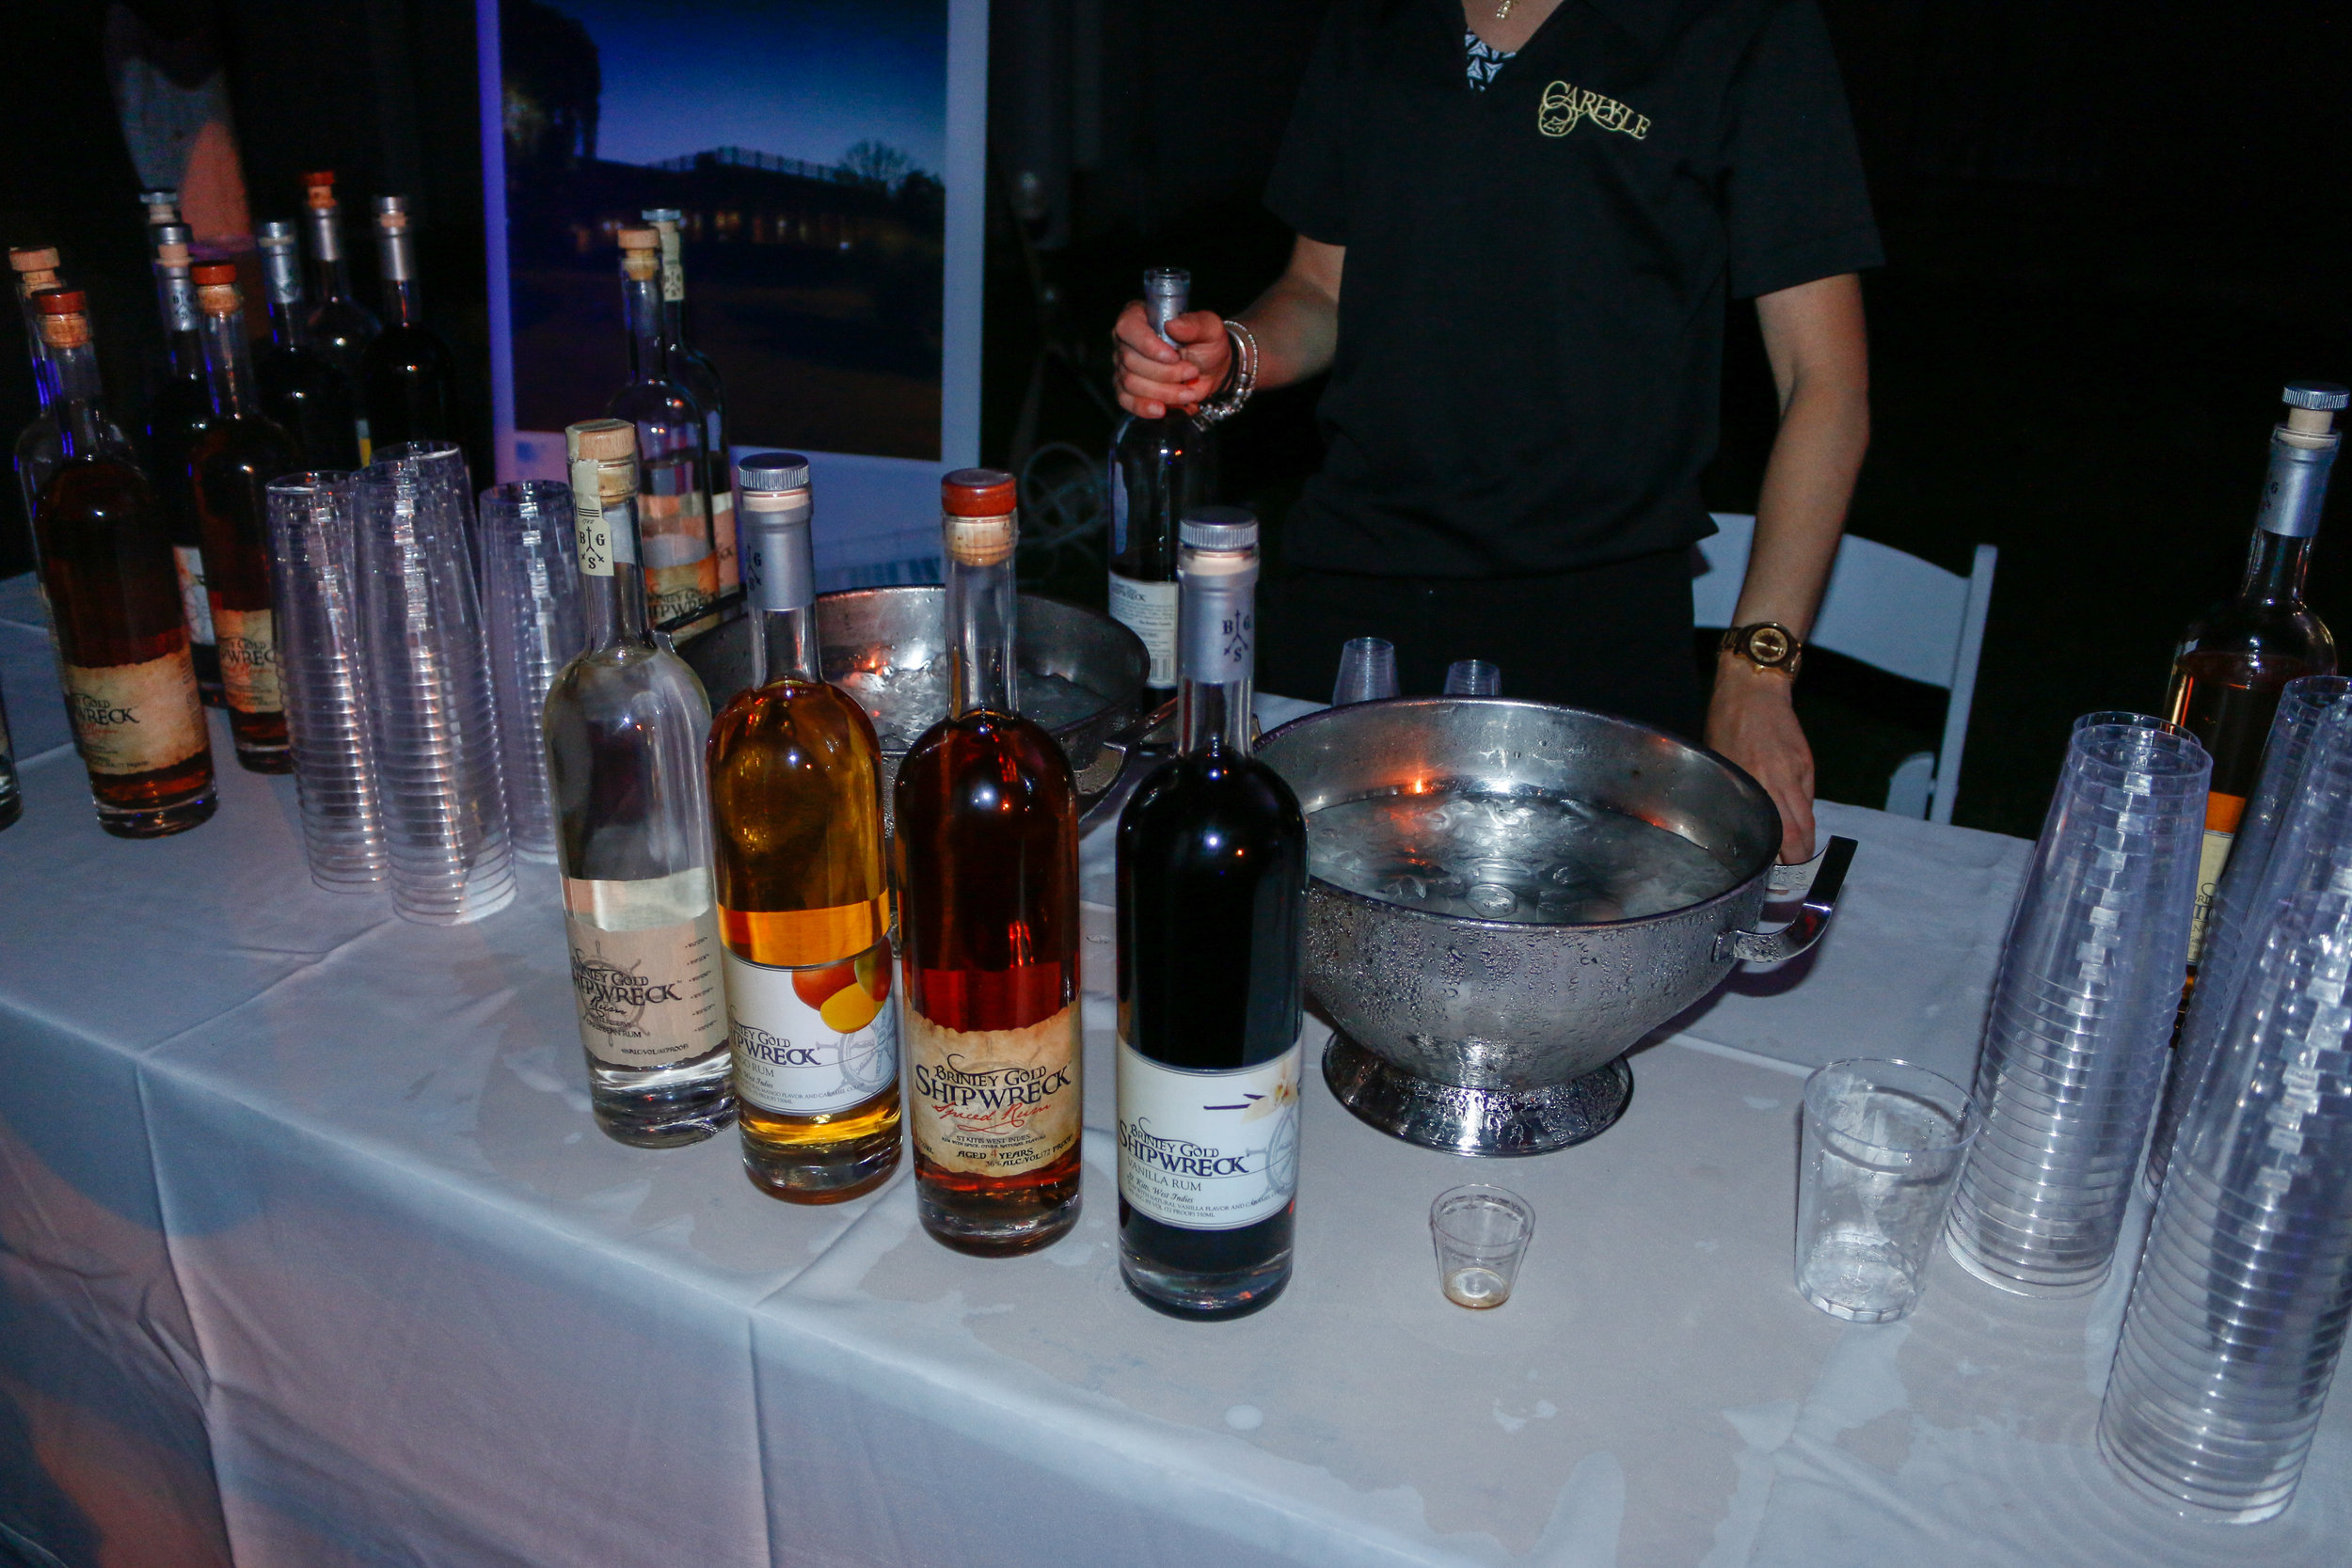 Drinks served to fuel the fun at St. Barth's most exciting night in the Hamptons!